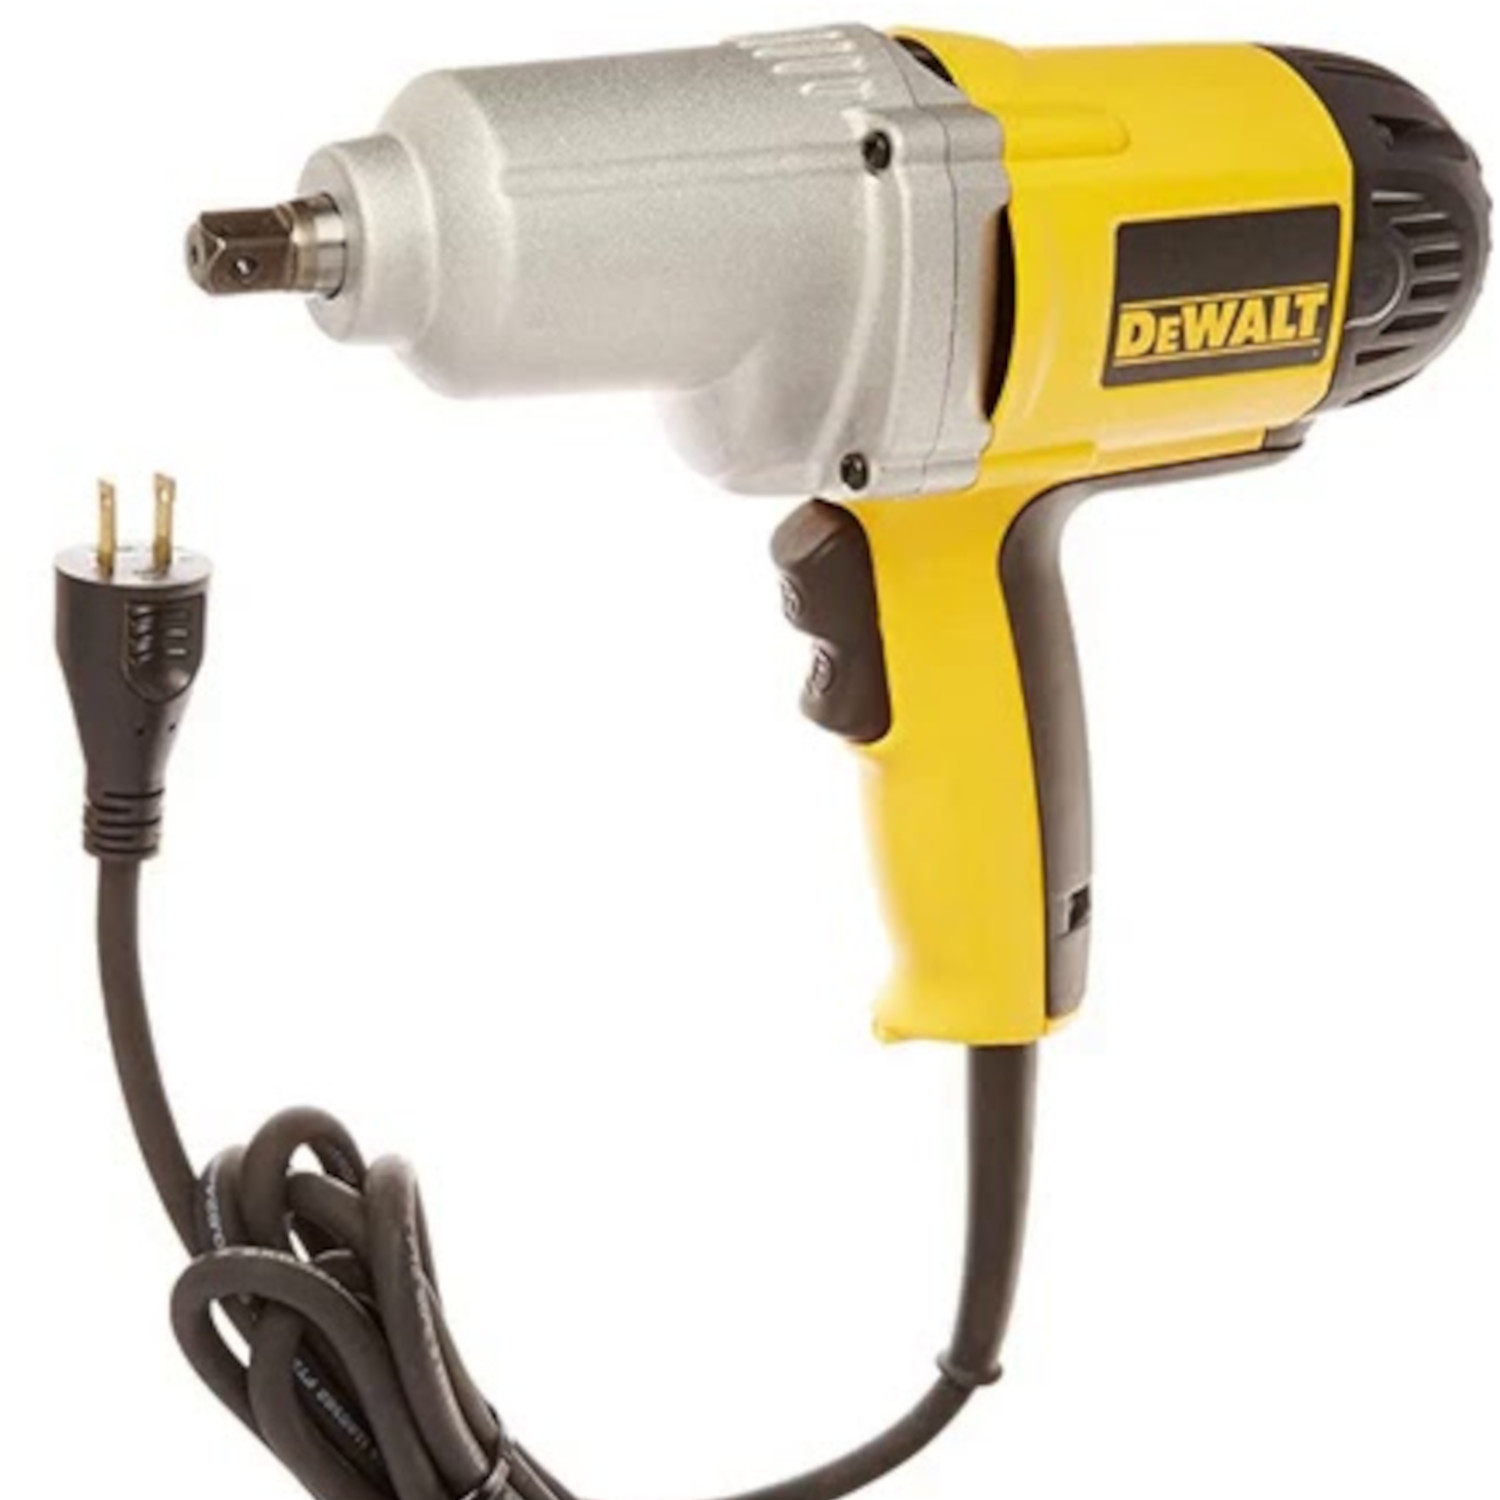 5 Best Corded Impact Wrench Review 2021